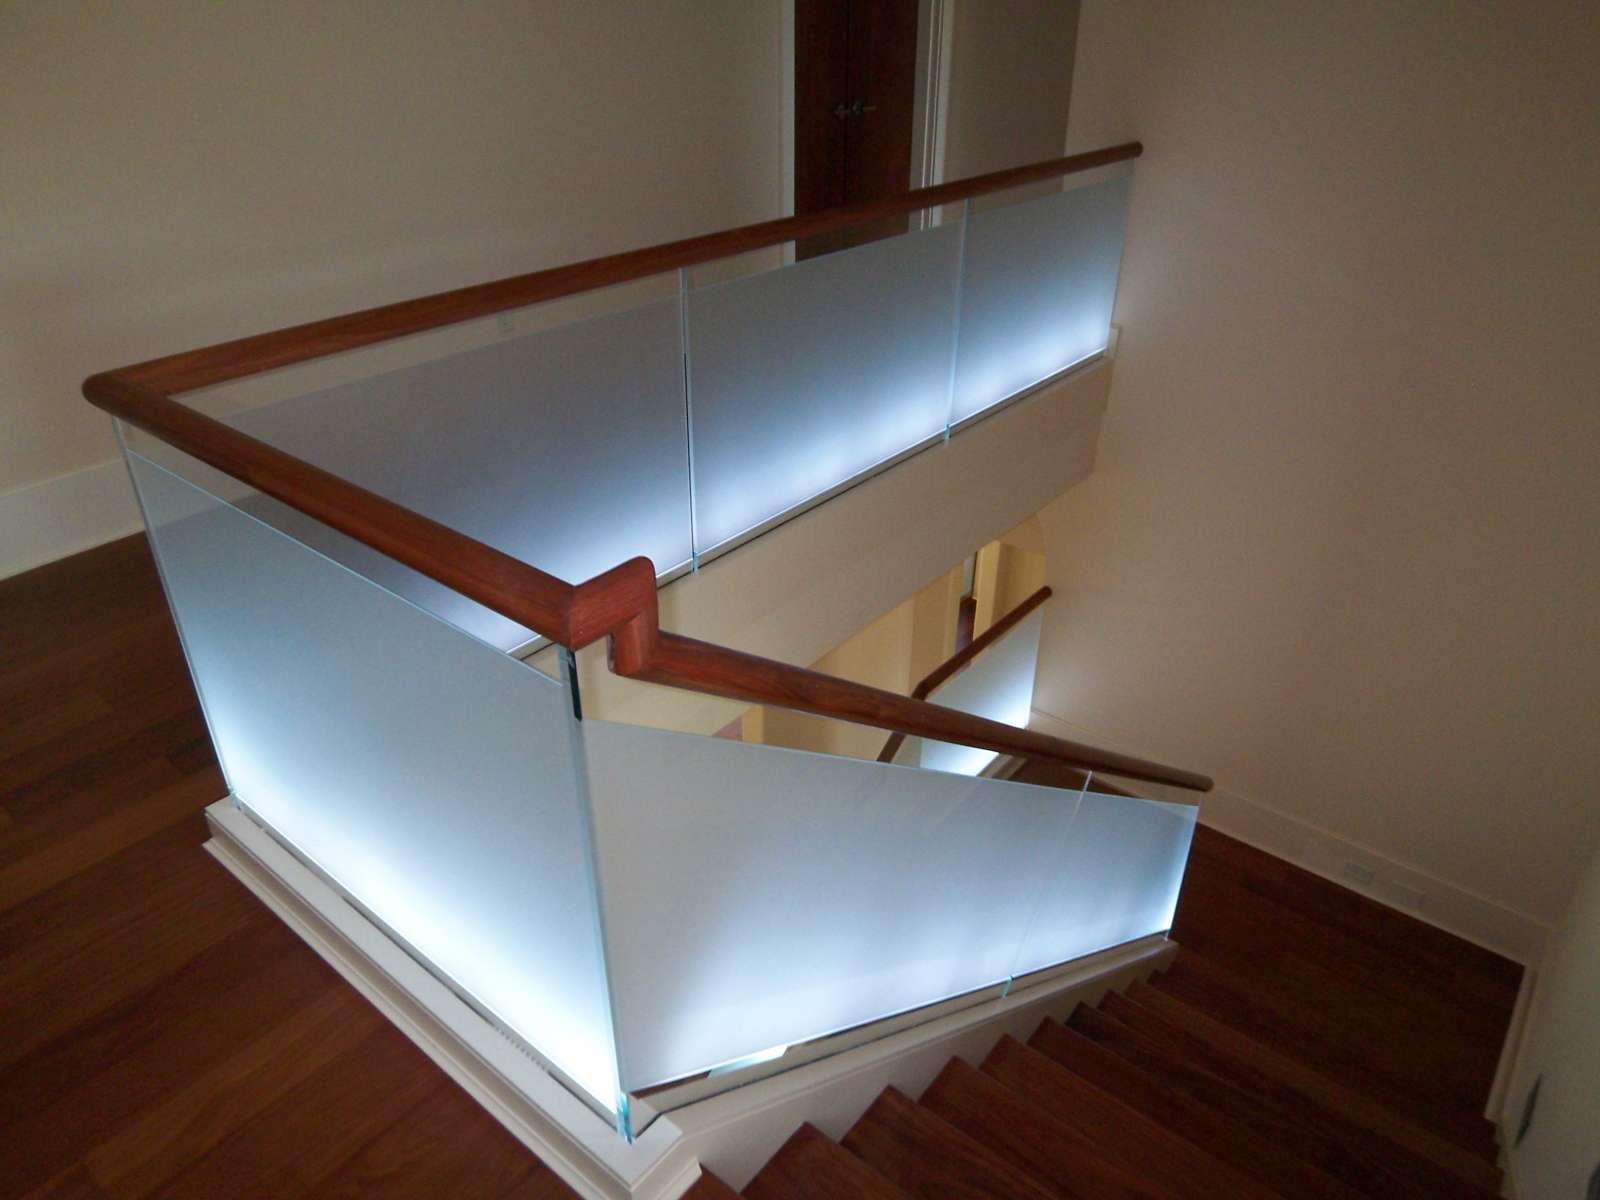 Graceful Staircase Design Sourn Stairs Stair Railings Toronto Stair Railing Los Angeles houzz 01 Modern Stair Railing